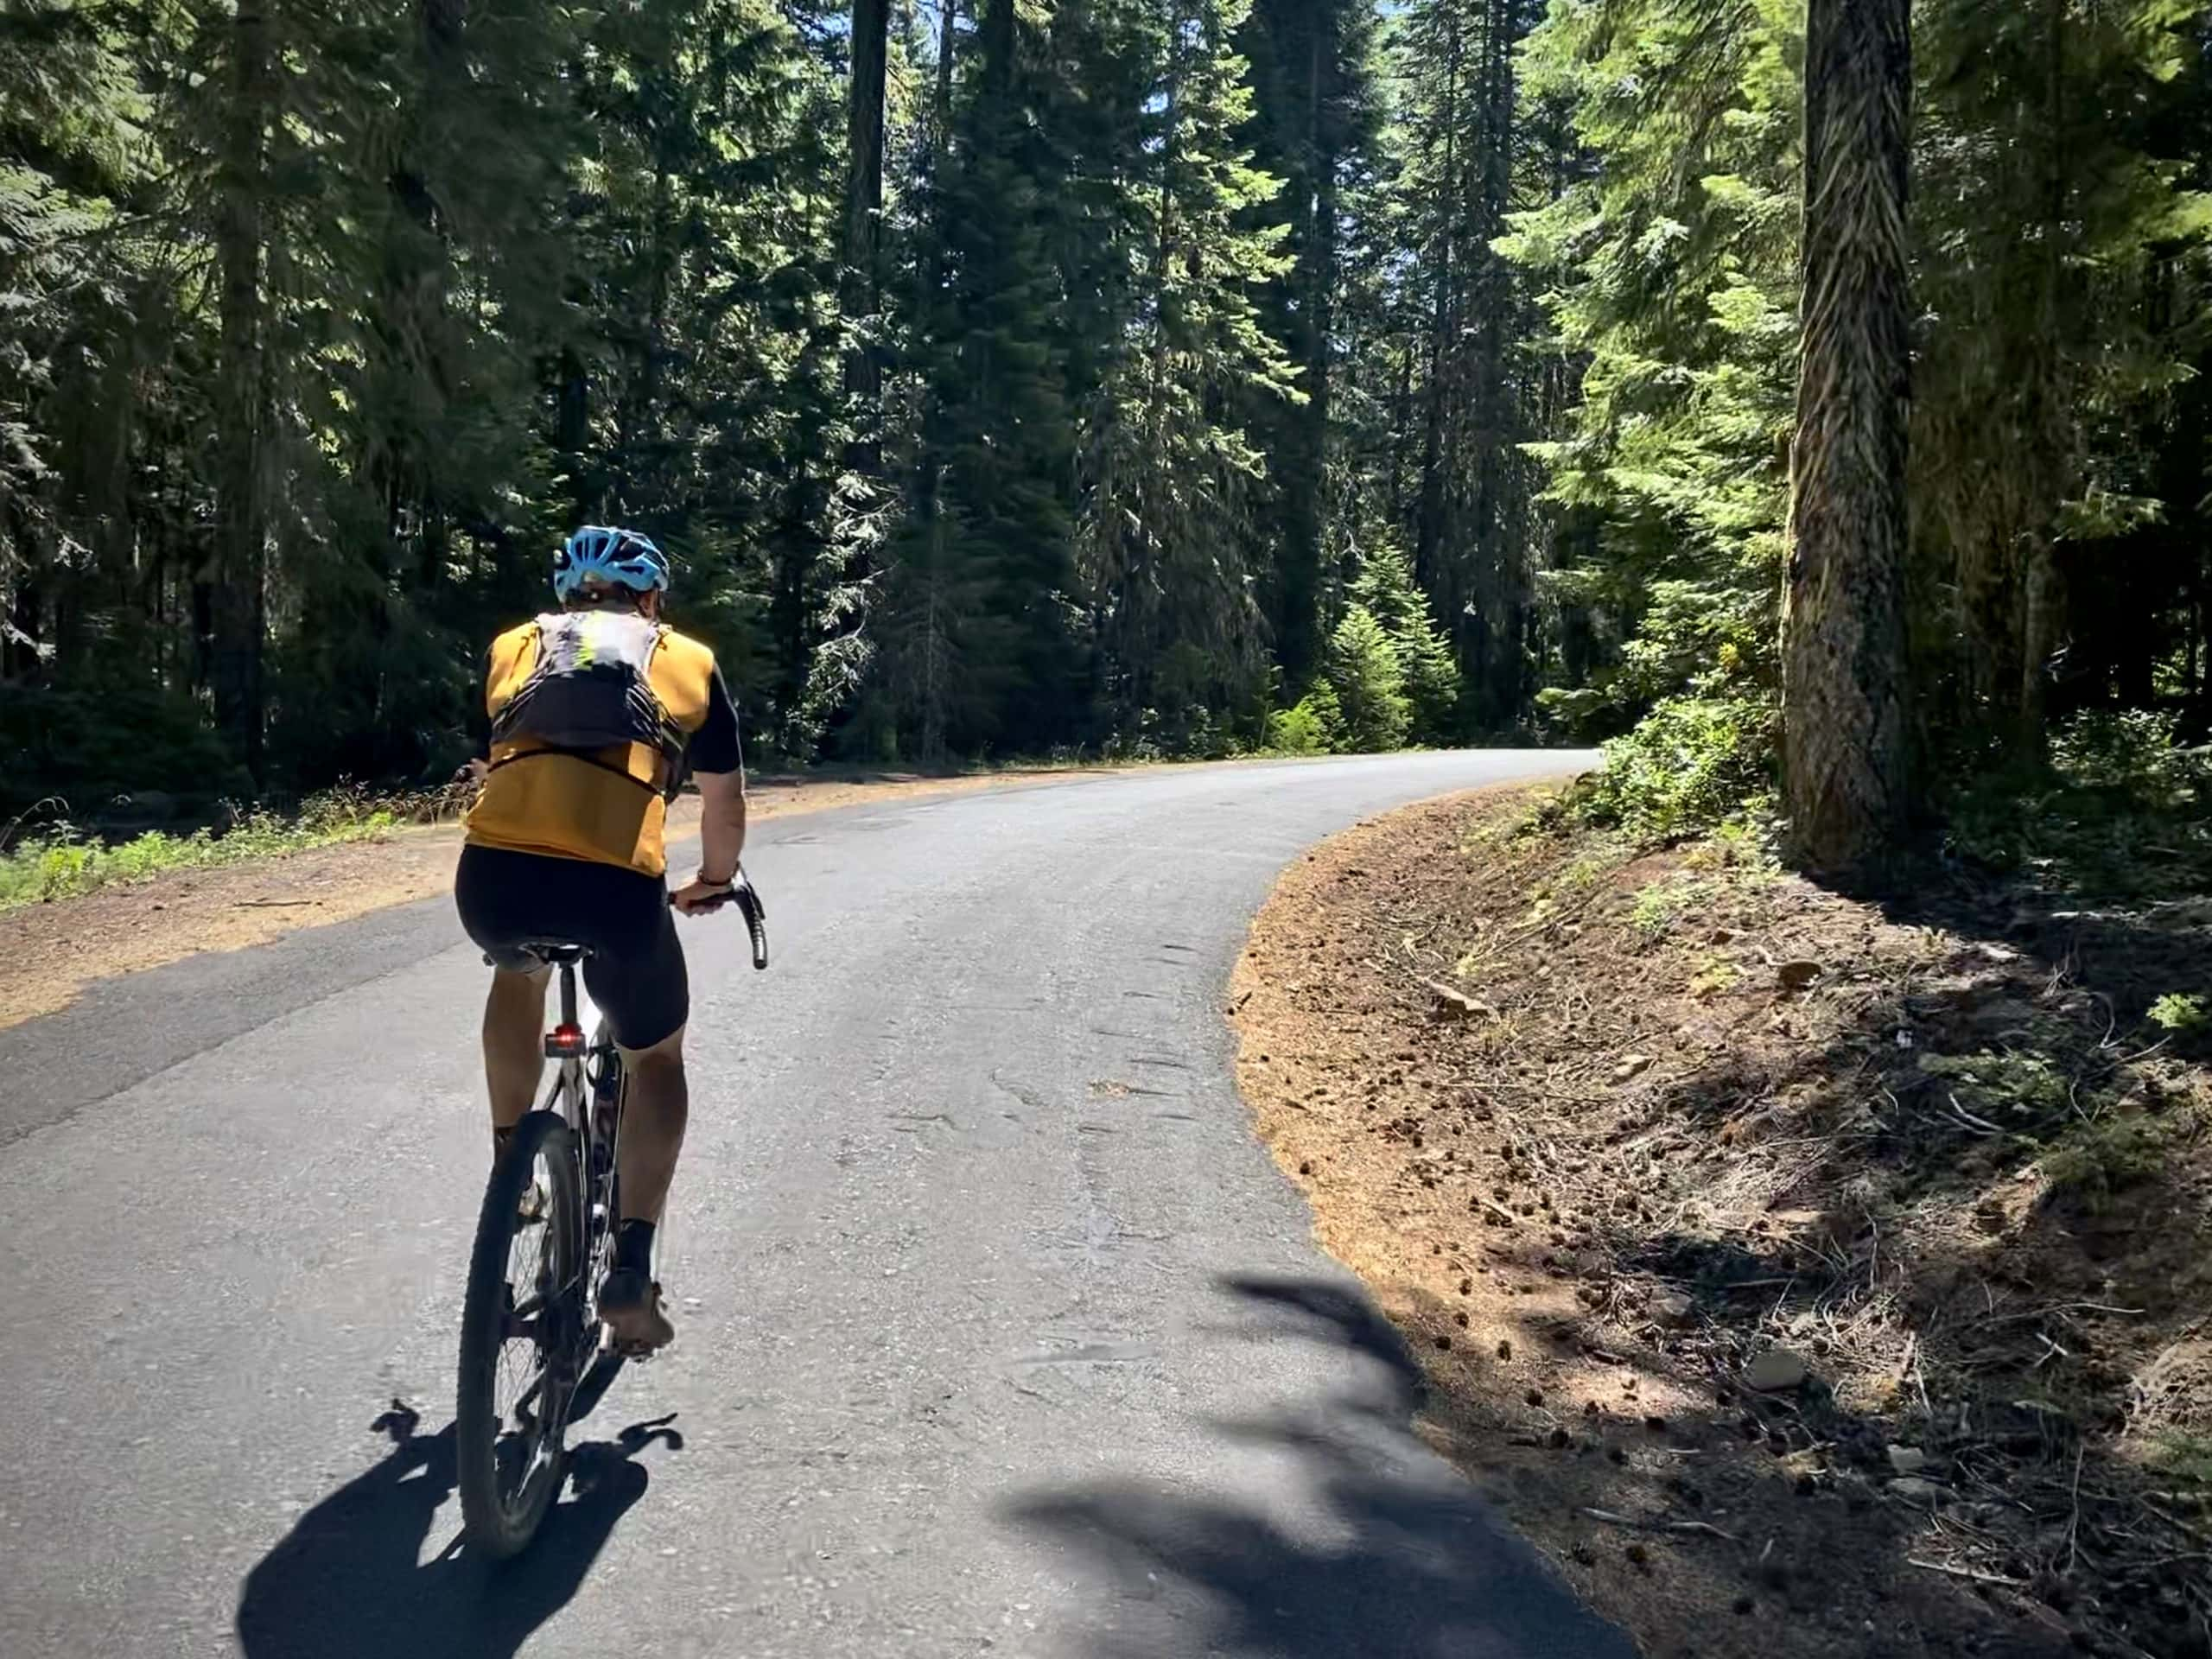 Cyclist on small single lane paved road in the Mt Hood National forest near Hood River, OR.